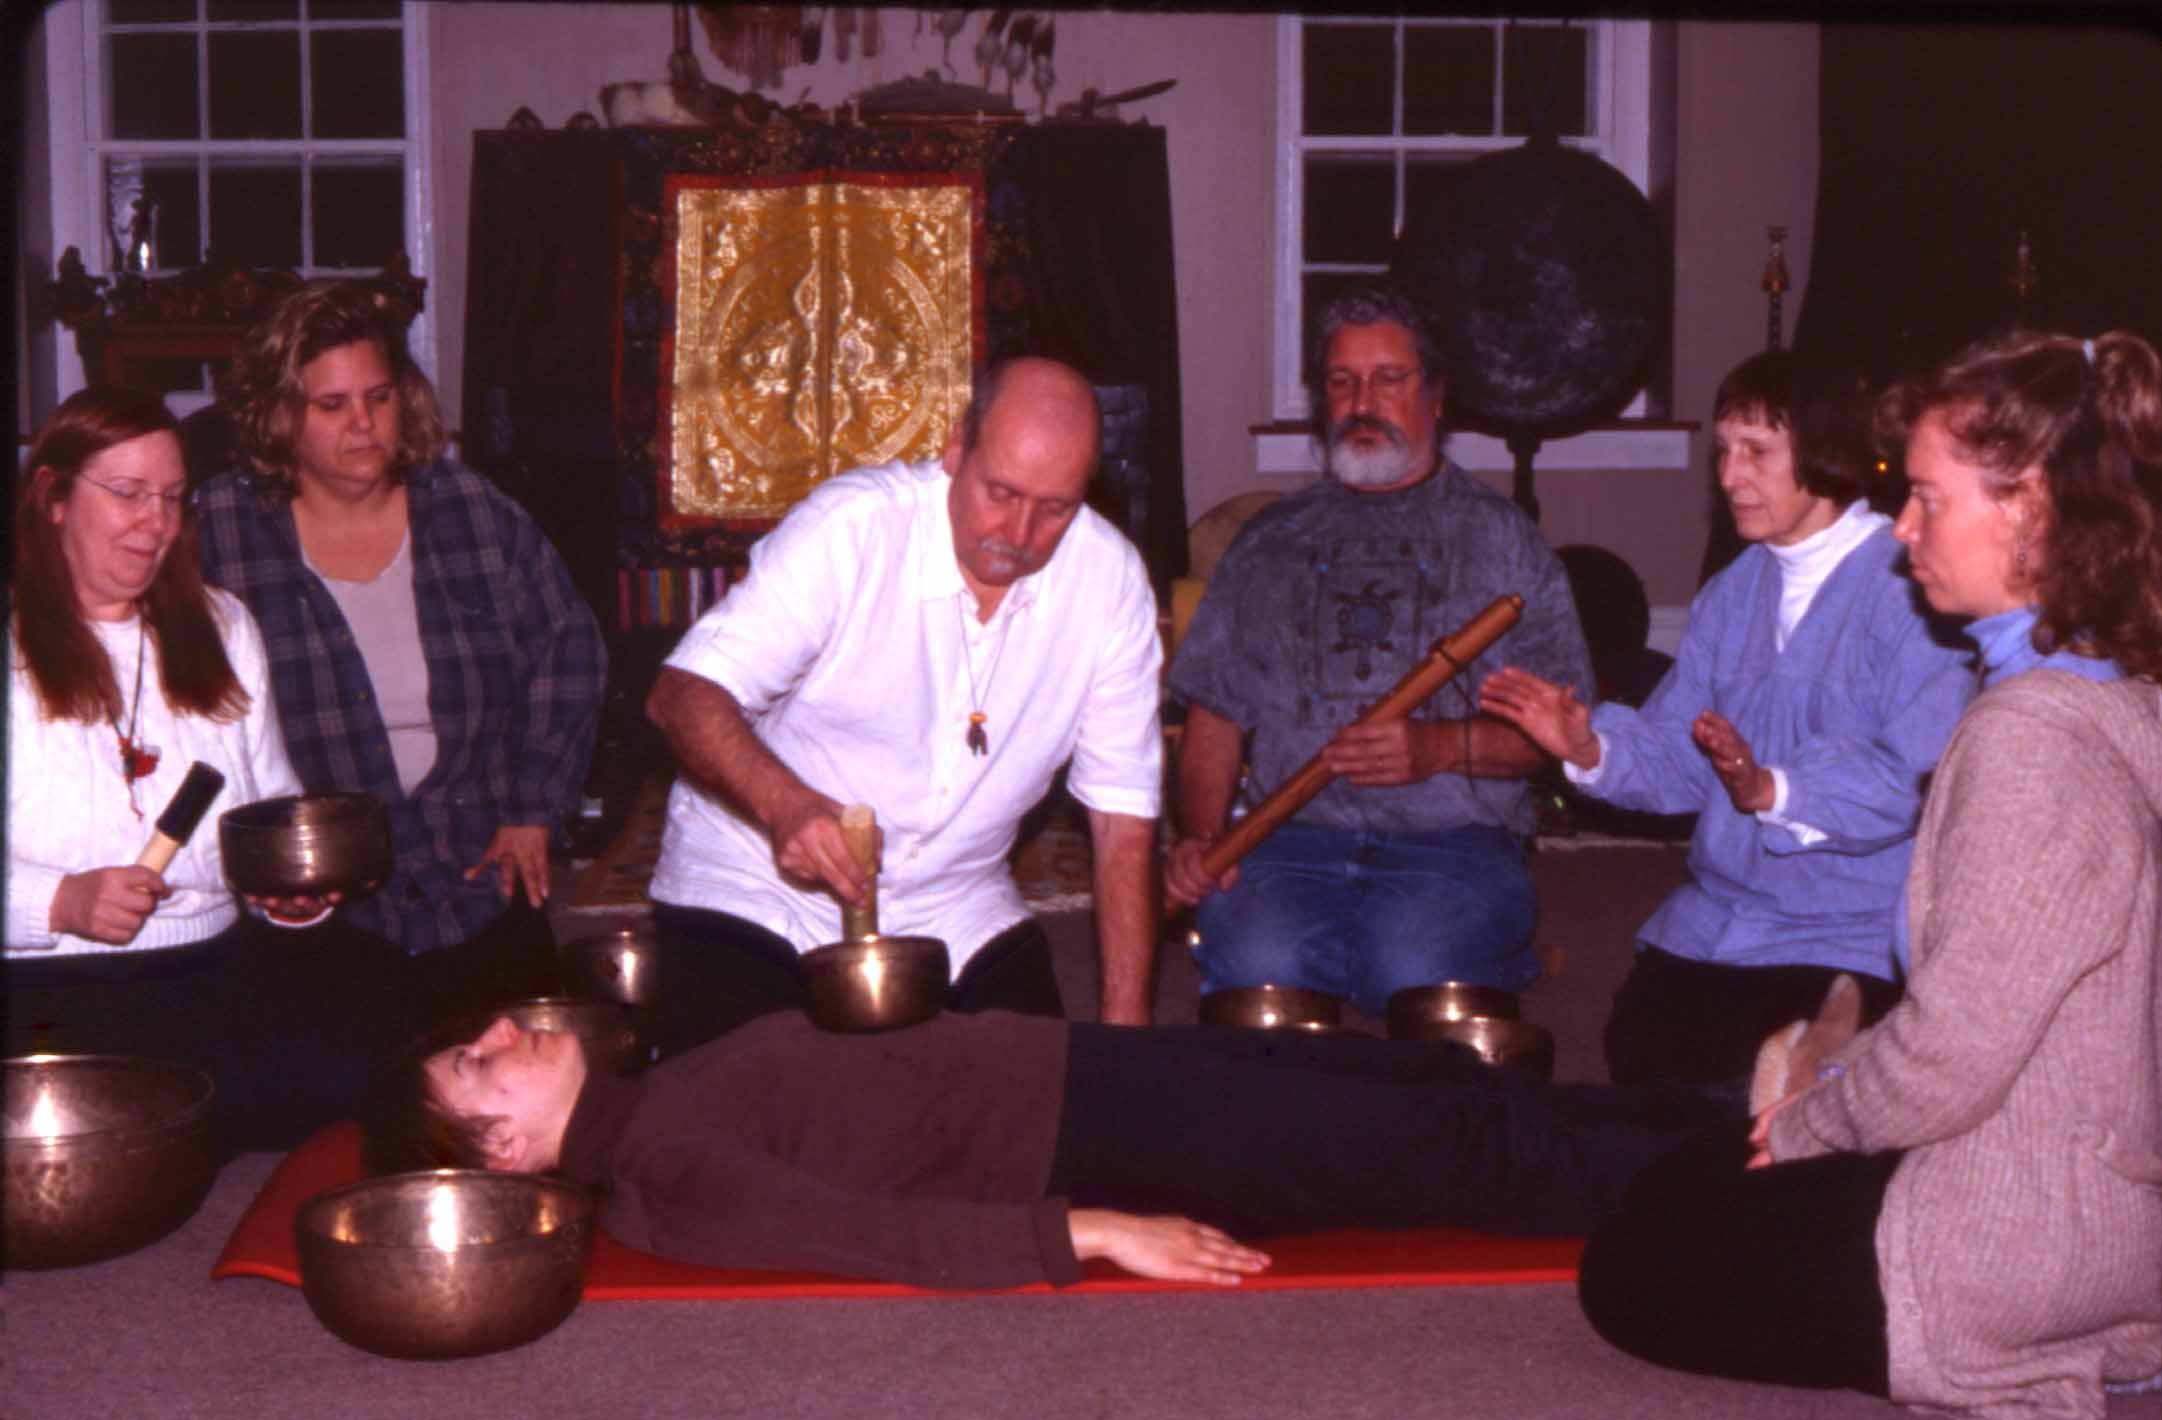 Mitch Nur demonstrates with a Singing Bowl